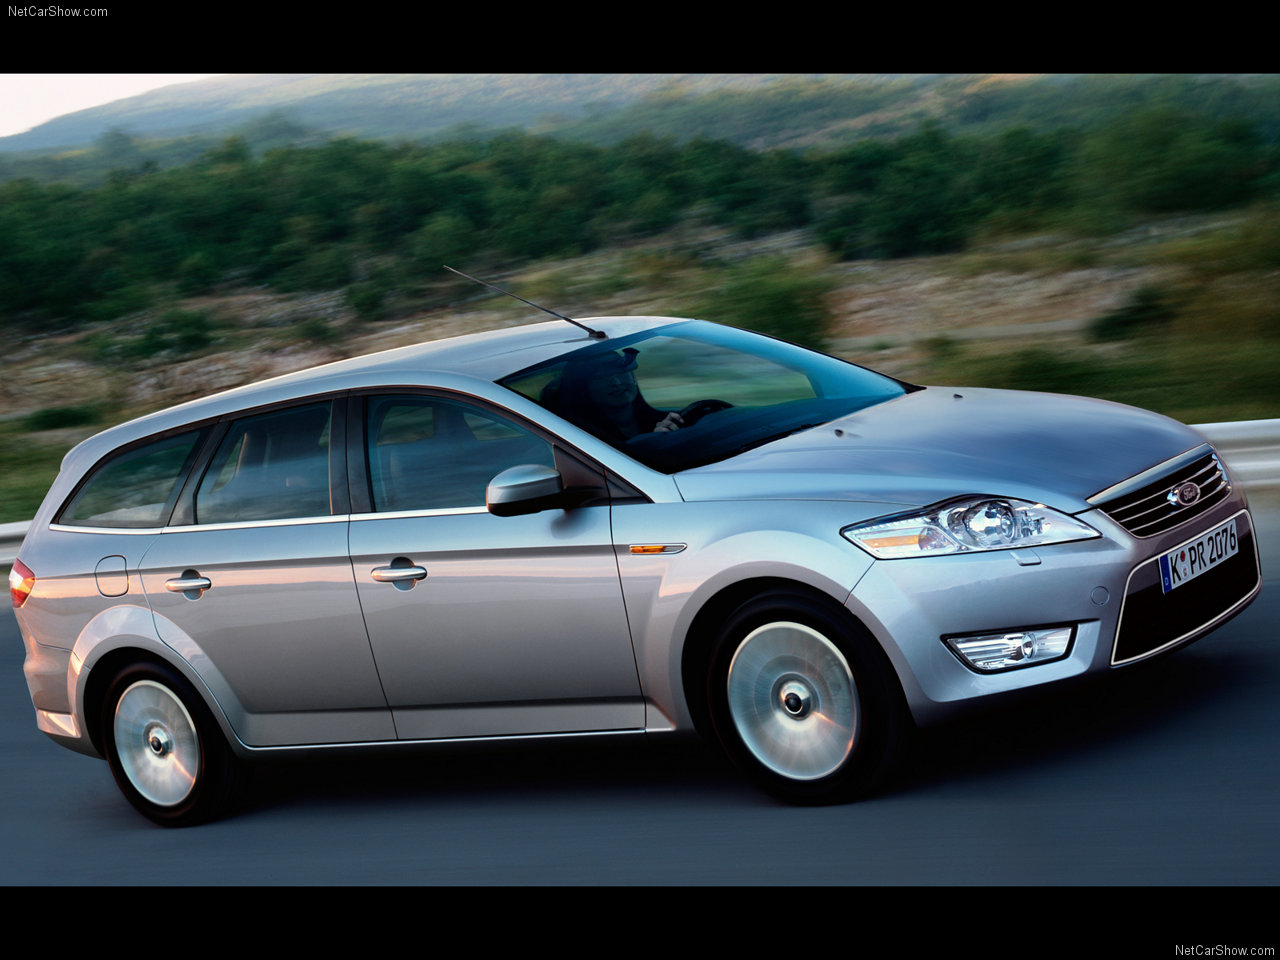 2007 Ford Mondeo Wagon Concept photo - 2